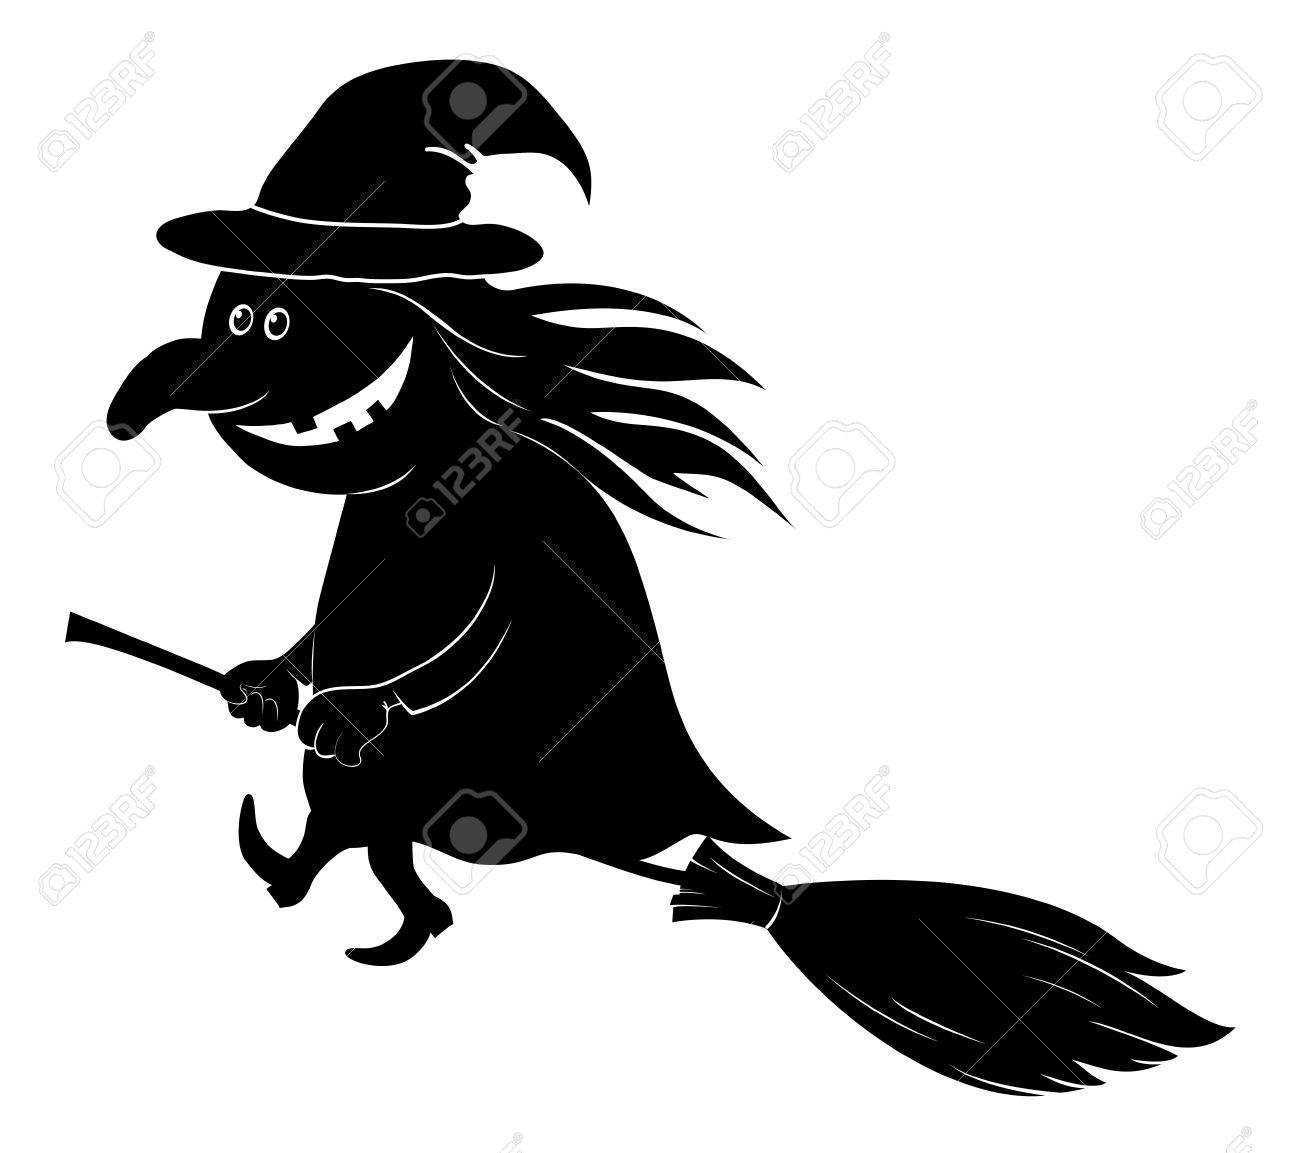 witch on broom images u0026 stock pictures royalty free witch on